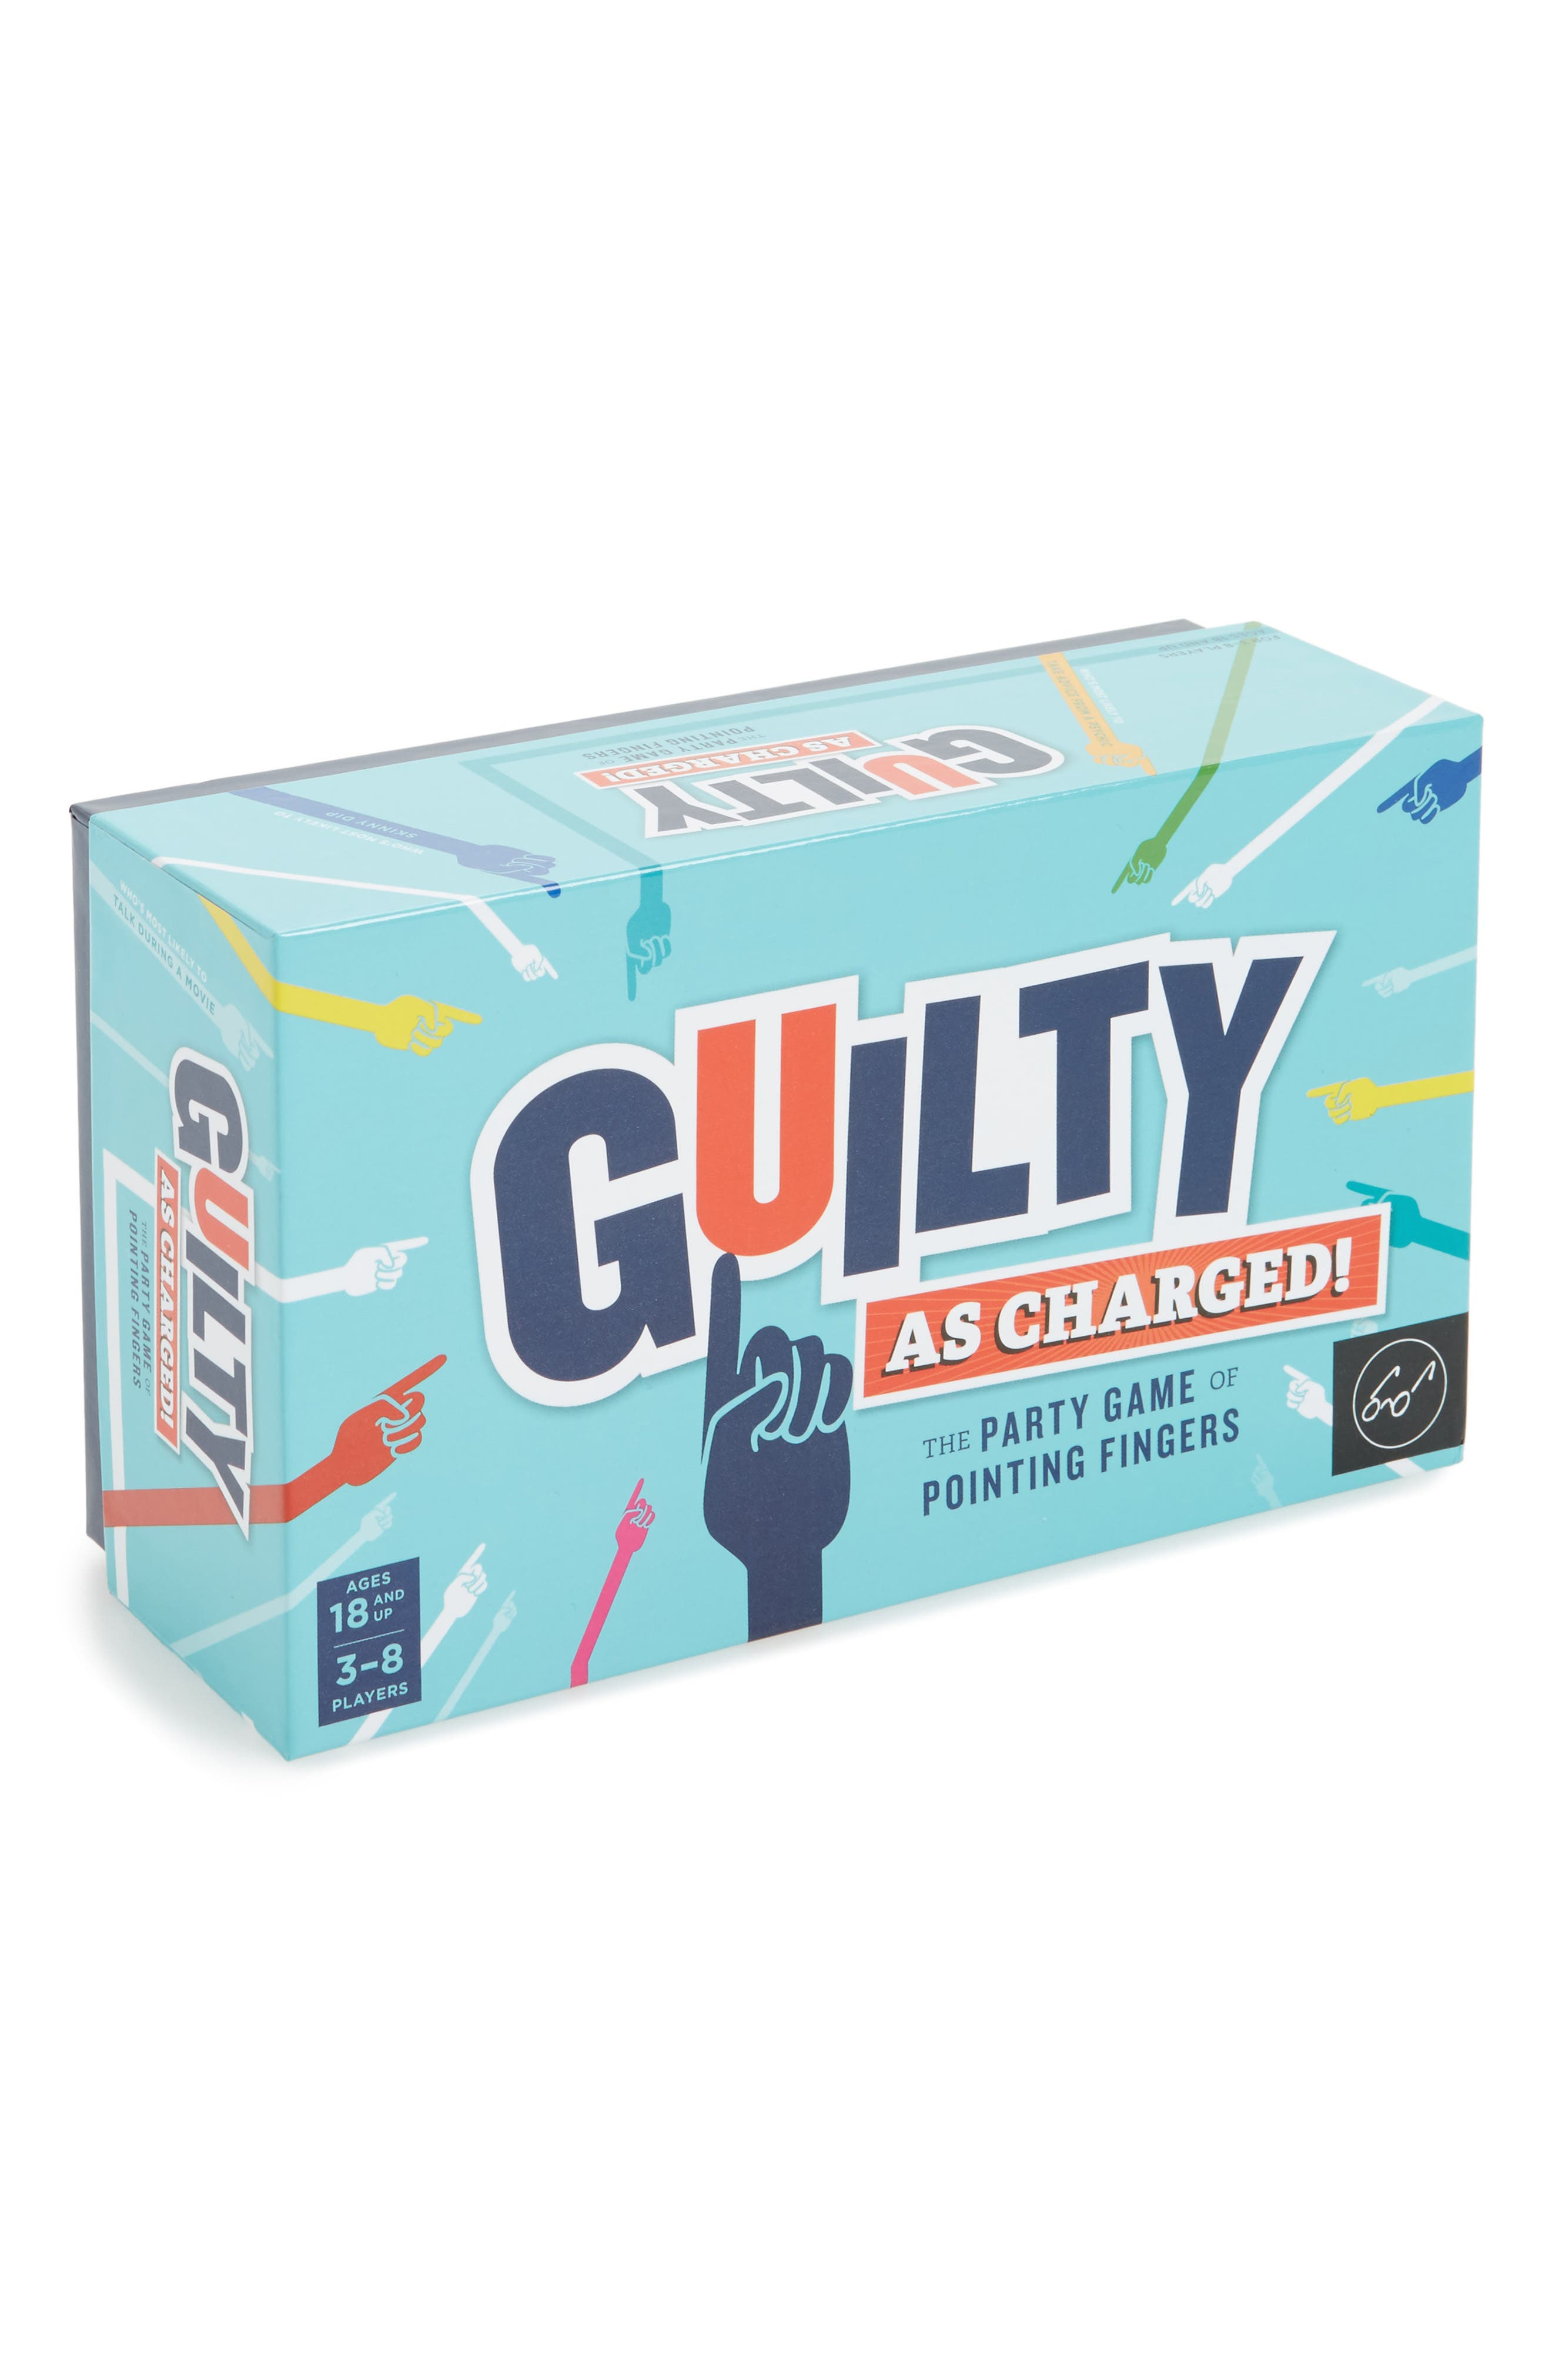 Guilty as Charged Game